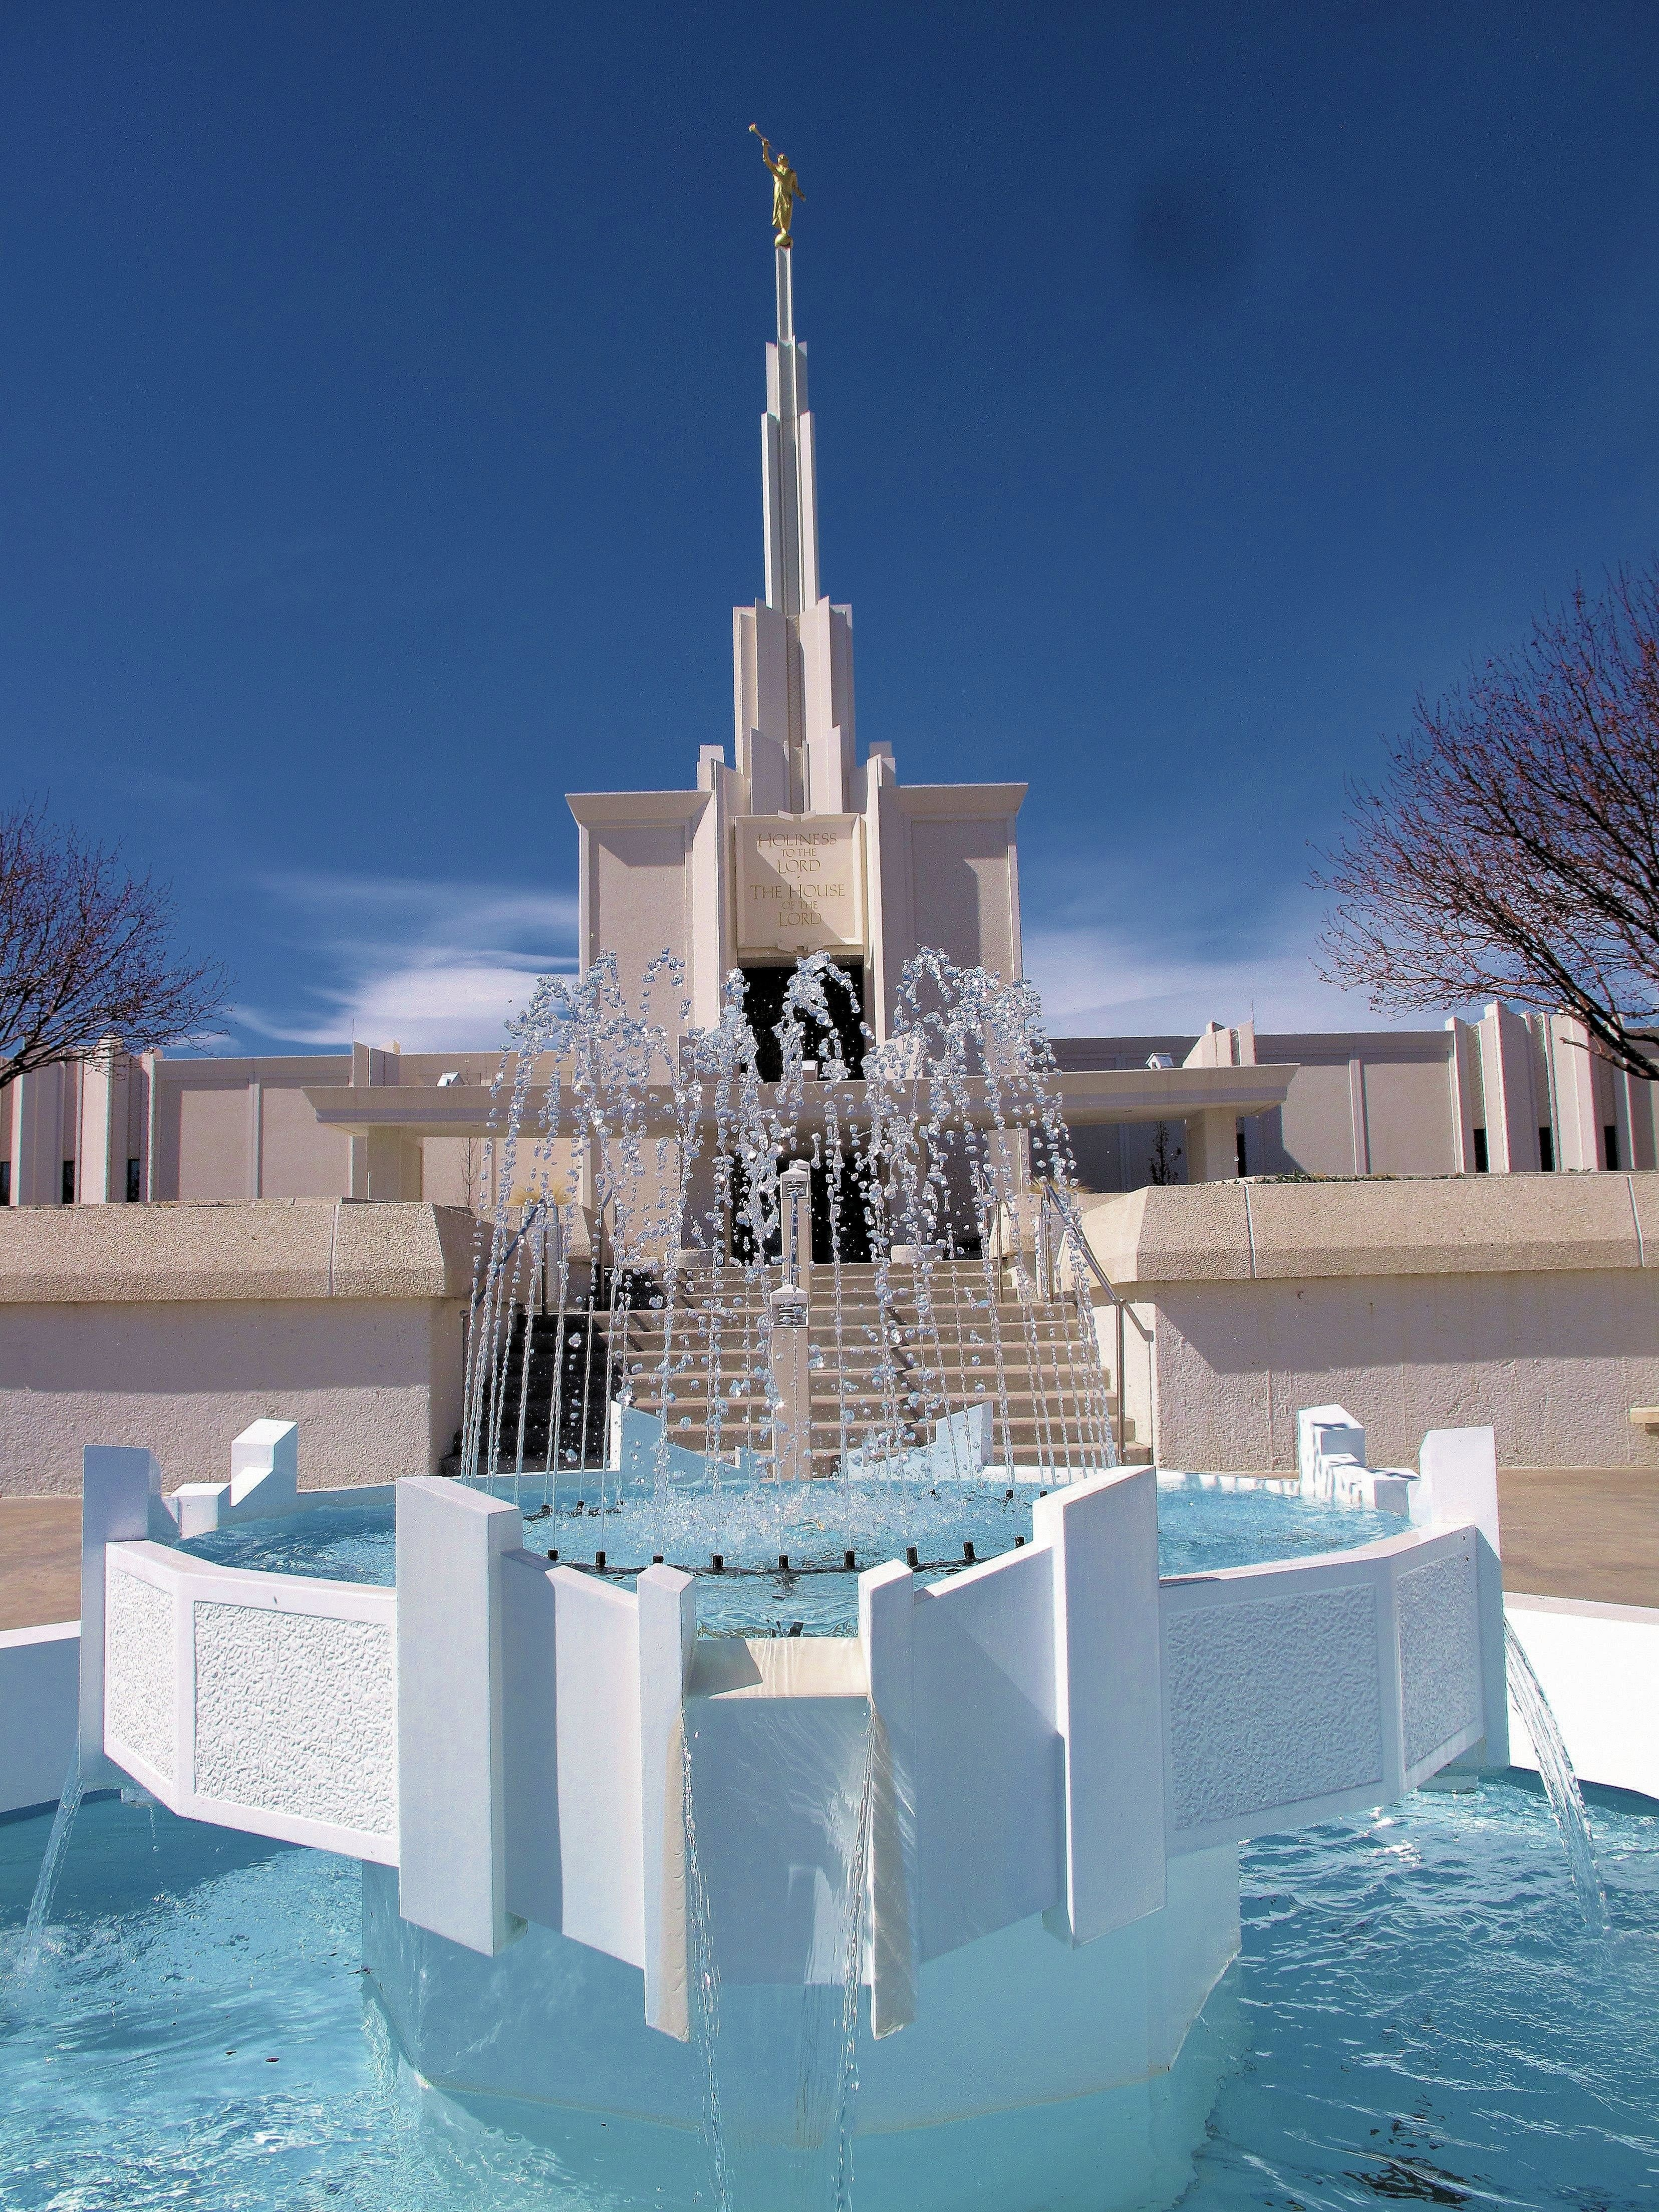 A fountain at the bottom of the stairs that lead up to the entrance of the Denver Colorado Temple.